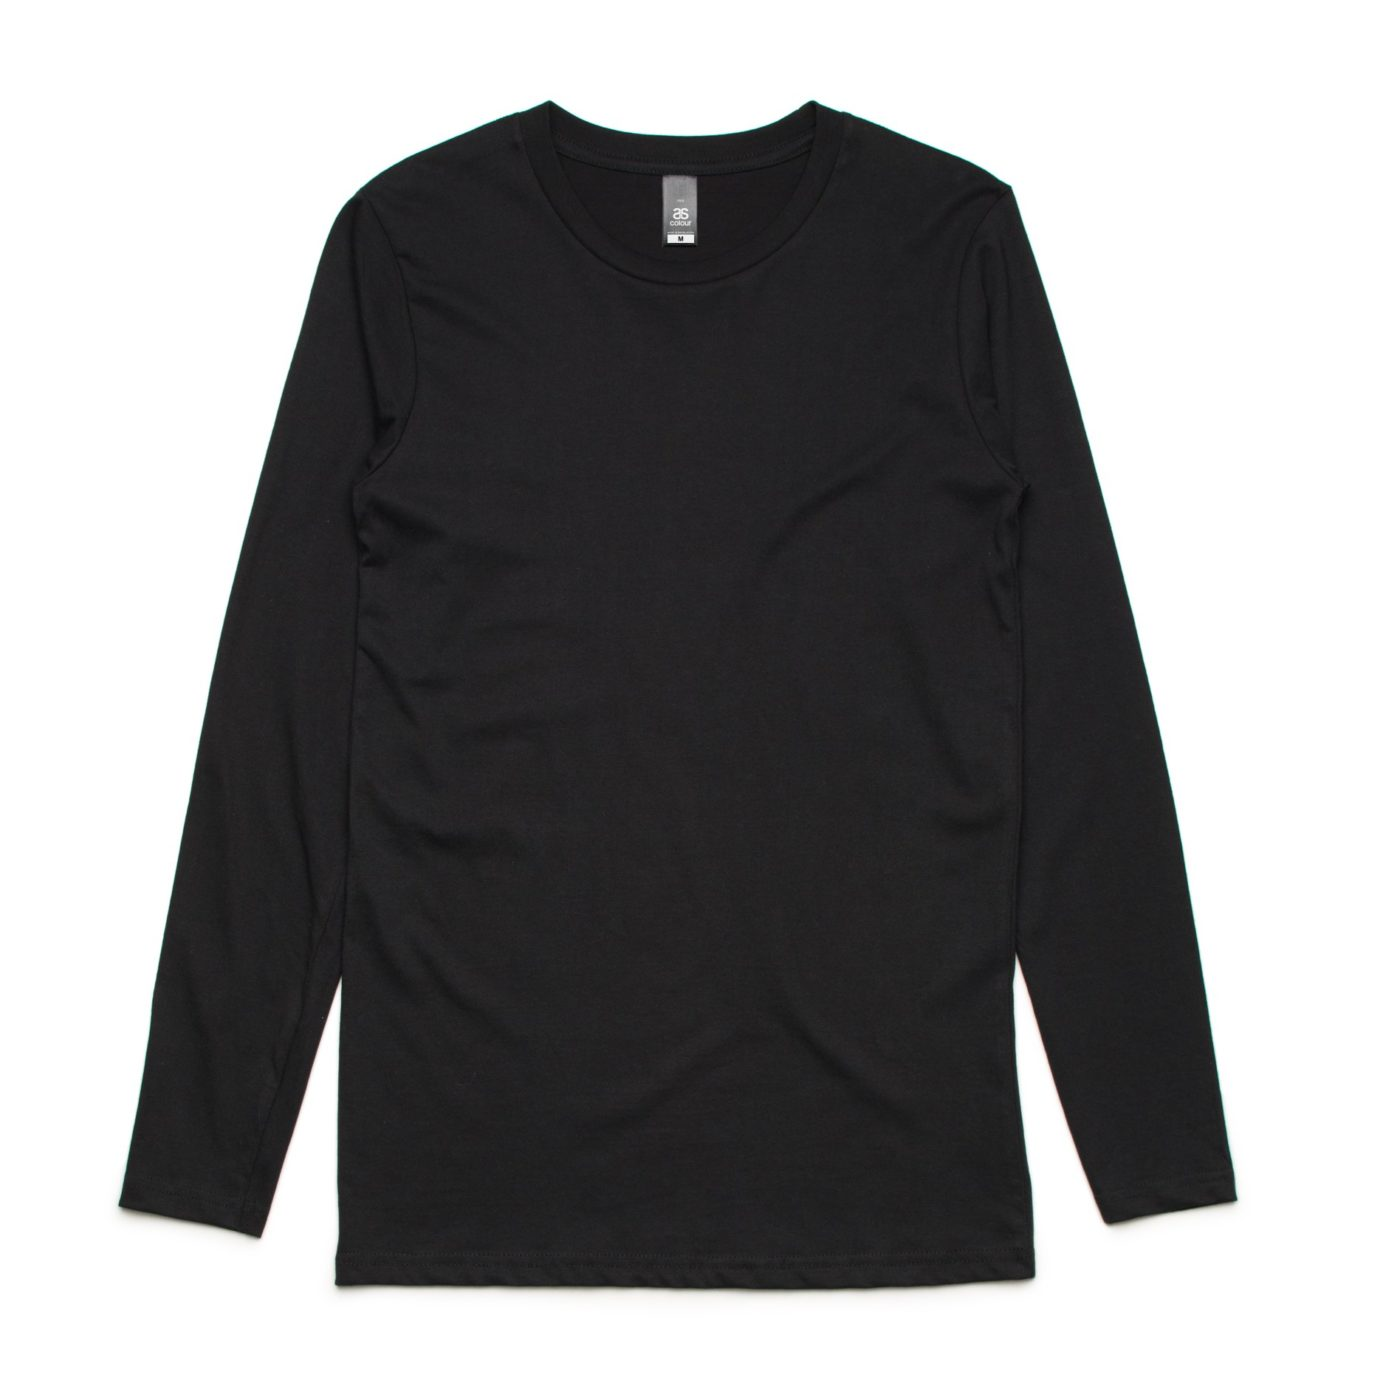 AS 5009 ink Long Sleeve tee print black